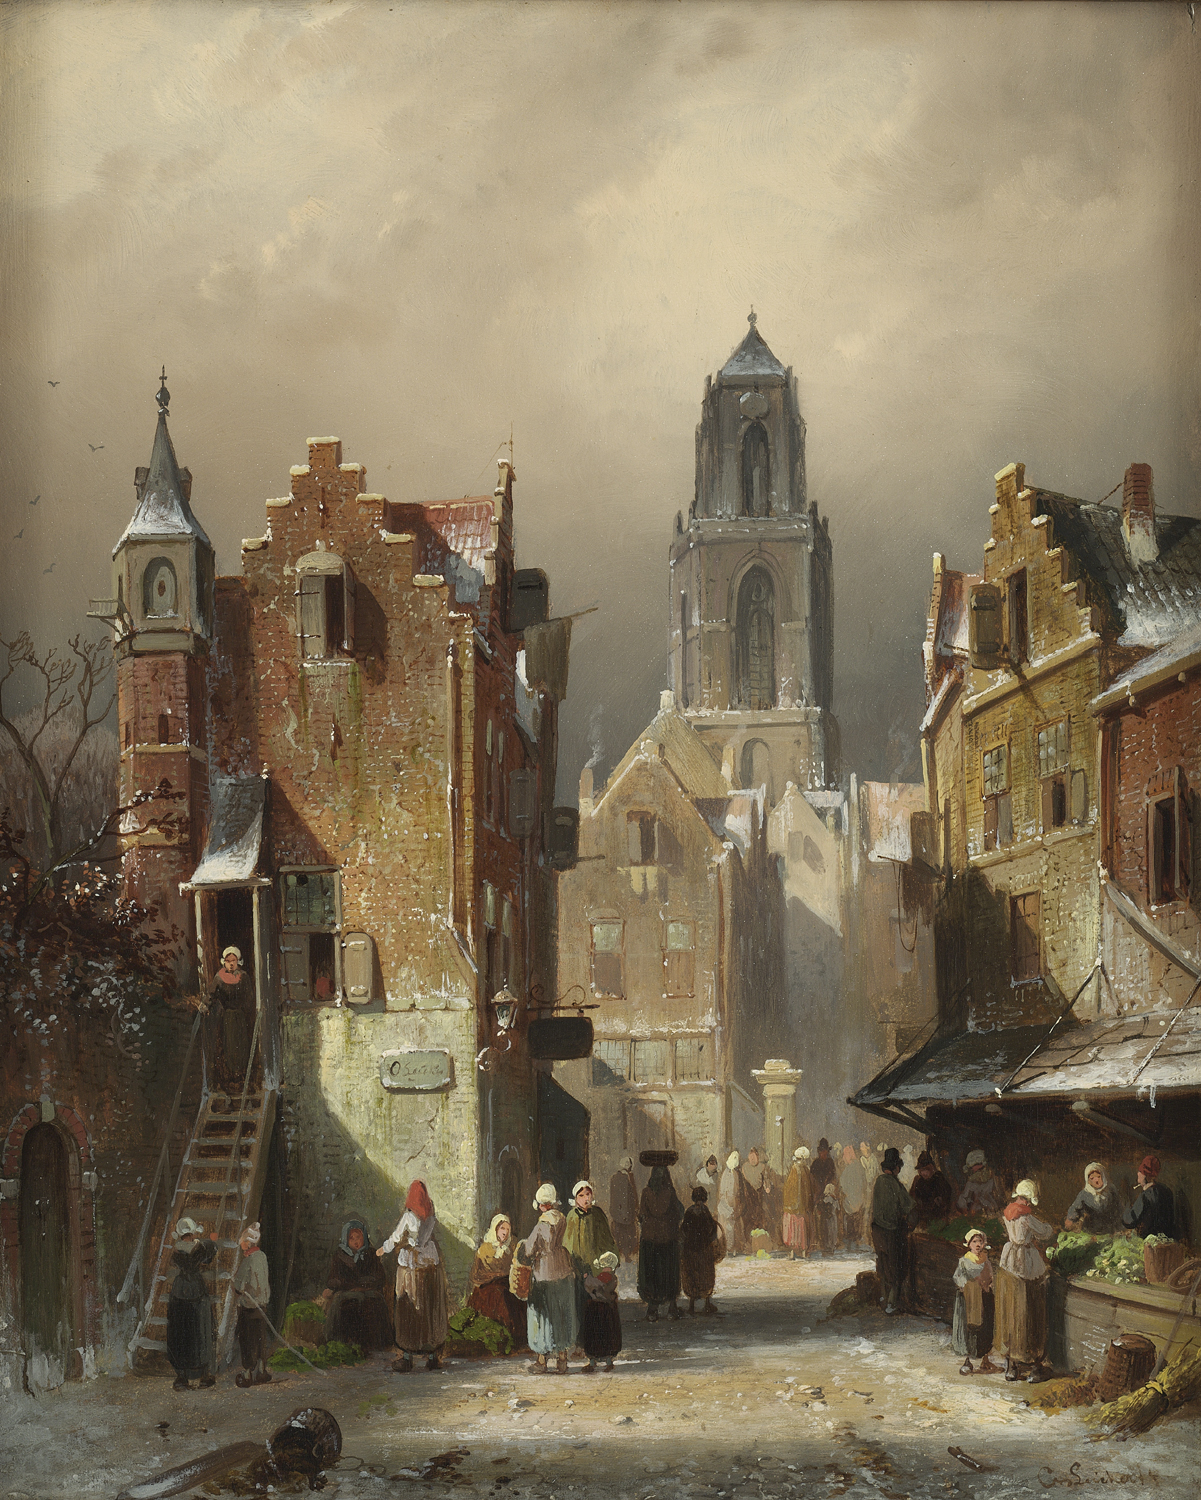 Charles Leickert | A view of a Dutch town in winter| Kunsthandel Bies | Bies Gallery